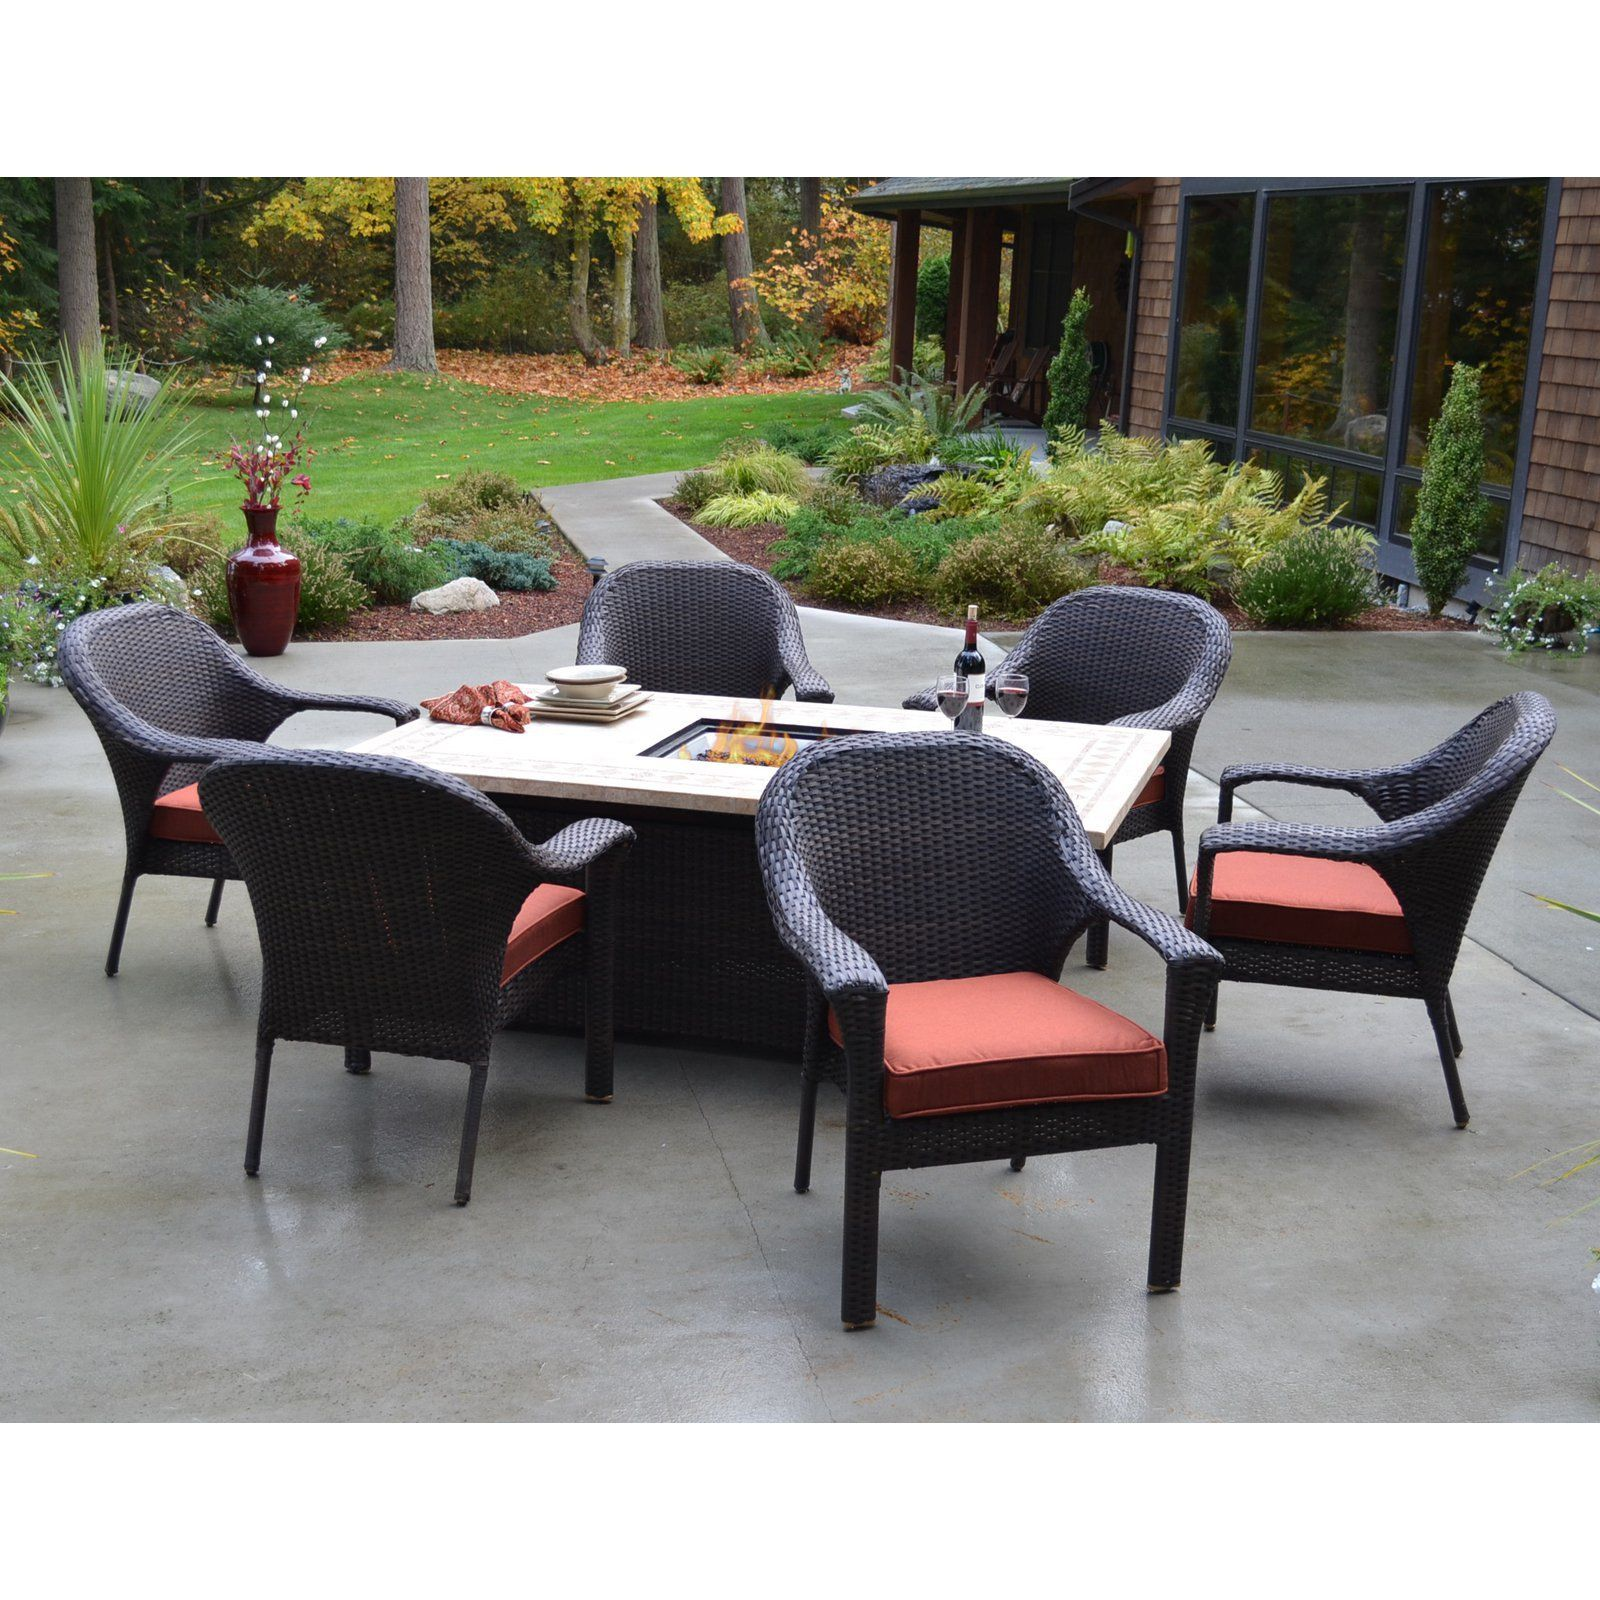 Bellmar All Weather Wicker Dining Fire Dining Set The Outdoor